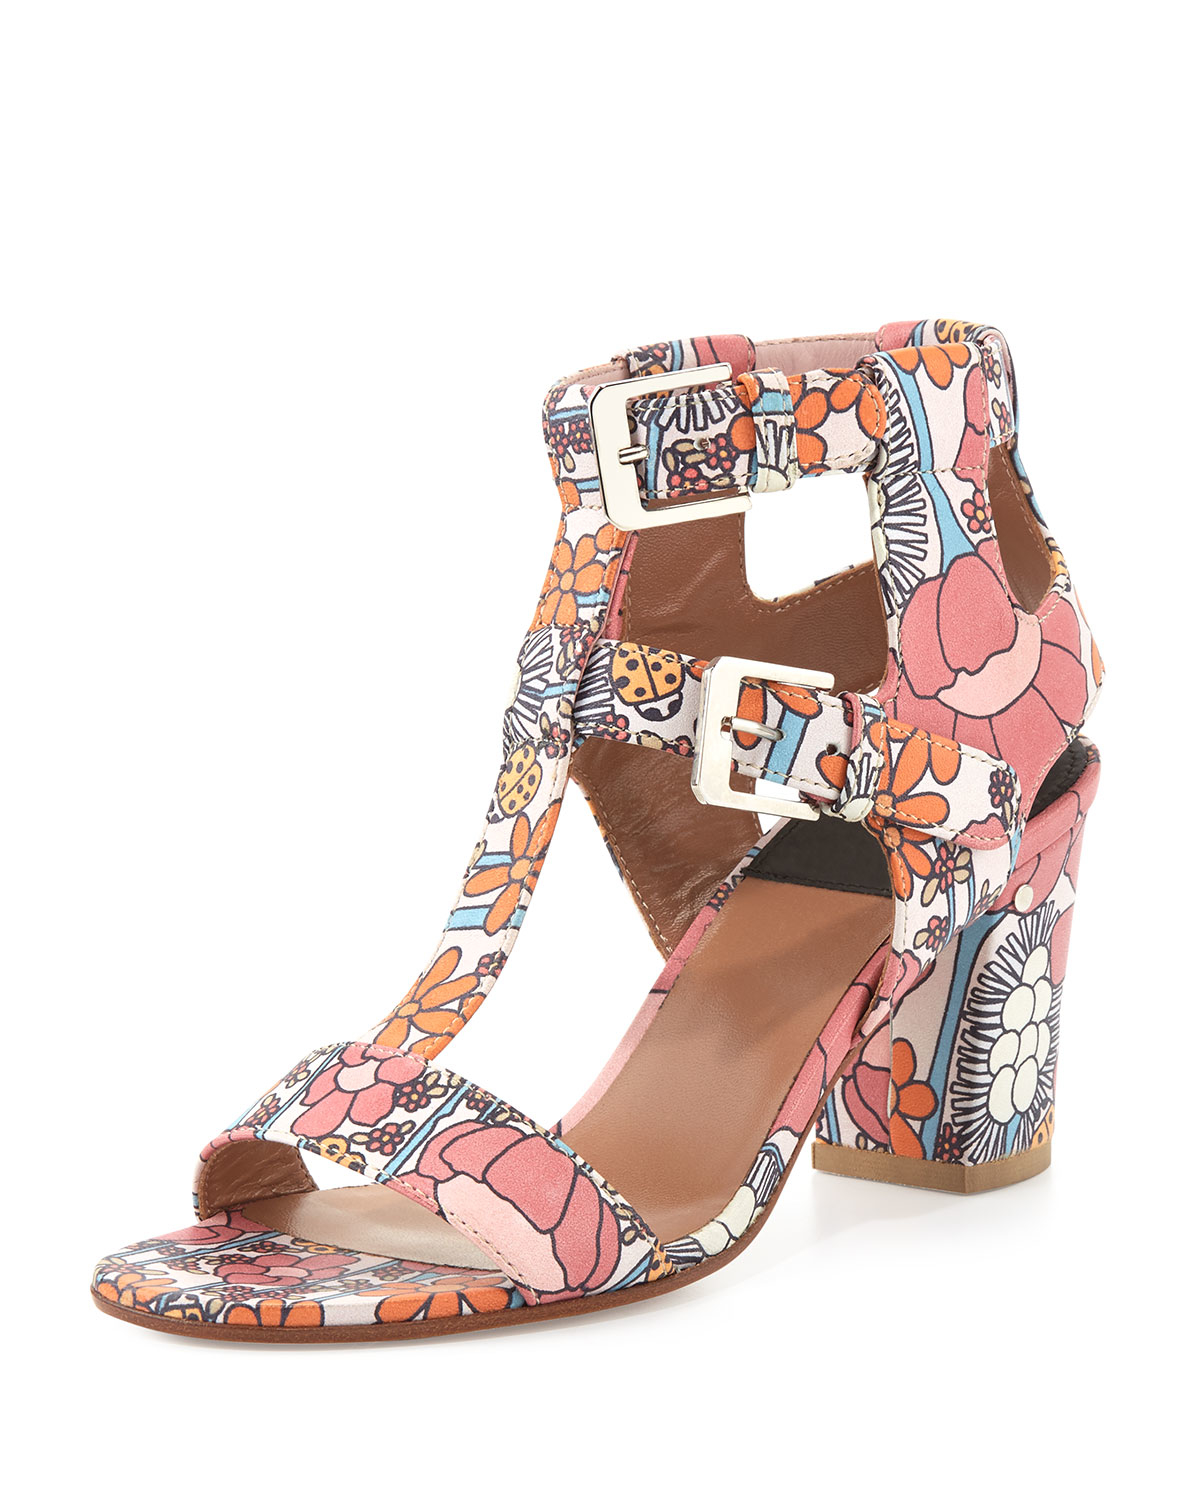 e17612bb195 Lyst - Laurence Dacade Diane Leather Floral-Print Sandals in Pink